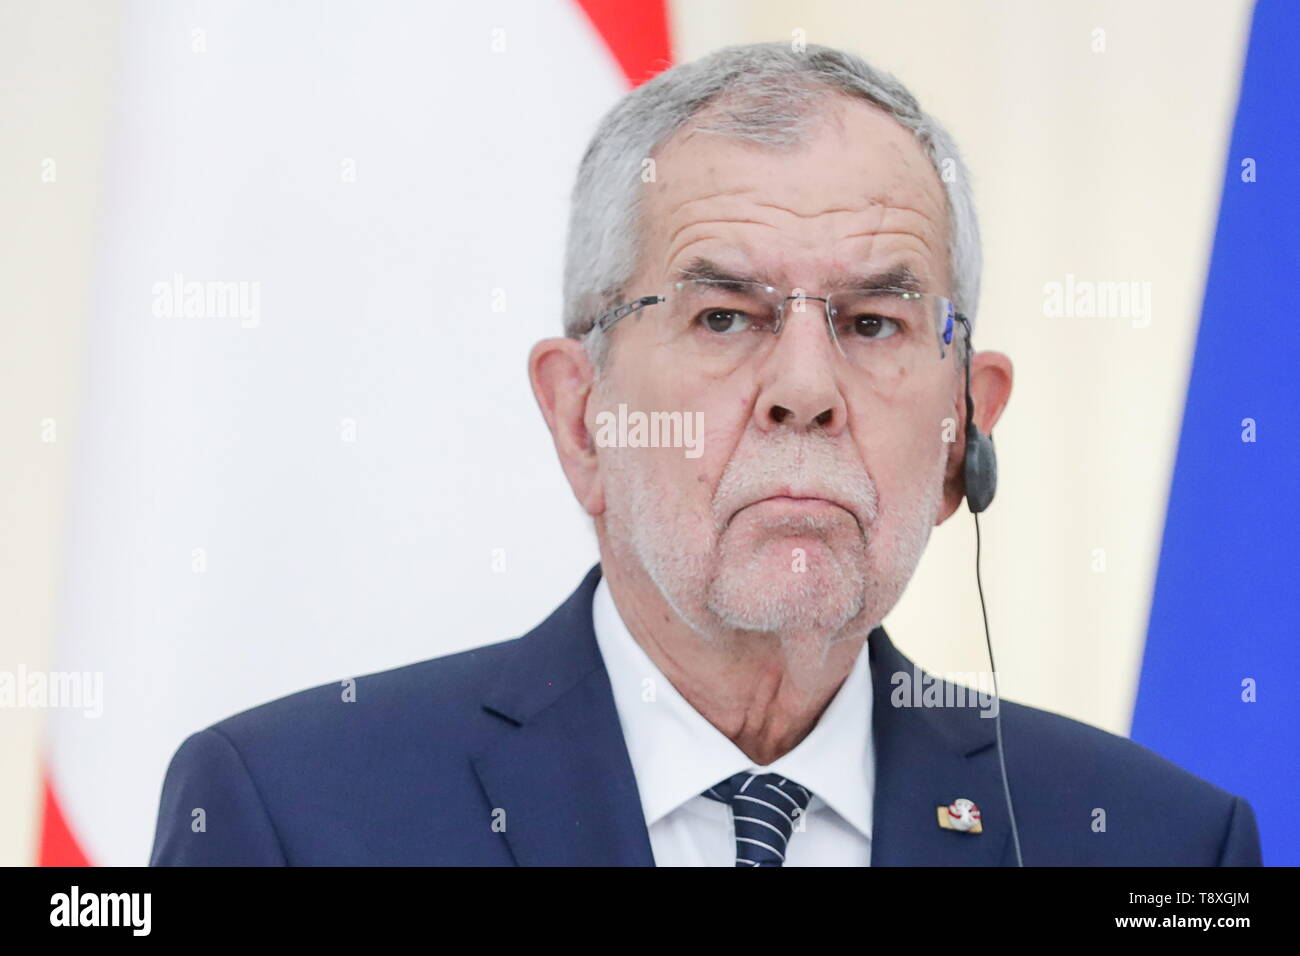 Sochi, Russia. 15th May, 2019. SOCHI, RUSSIA - MAY 15, 2019: Austria's President Alexander Van der Bellen gives a press conference folowing his meeting with Russia's President Vladimir Putin at the Rus health resort. Mikhail Metzel/TASS Credit: ITAR-TASS News Agency/Alamy Live News Stock Photo